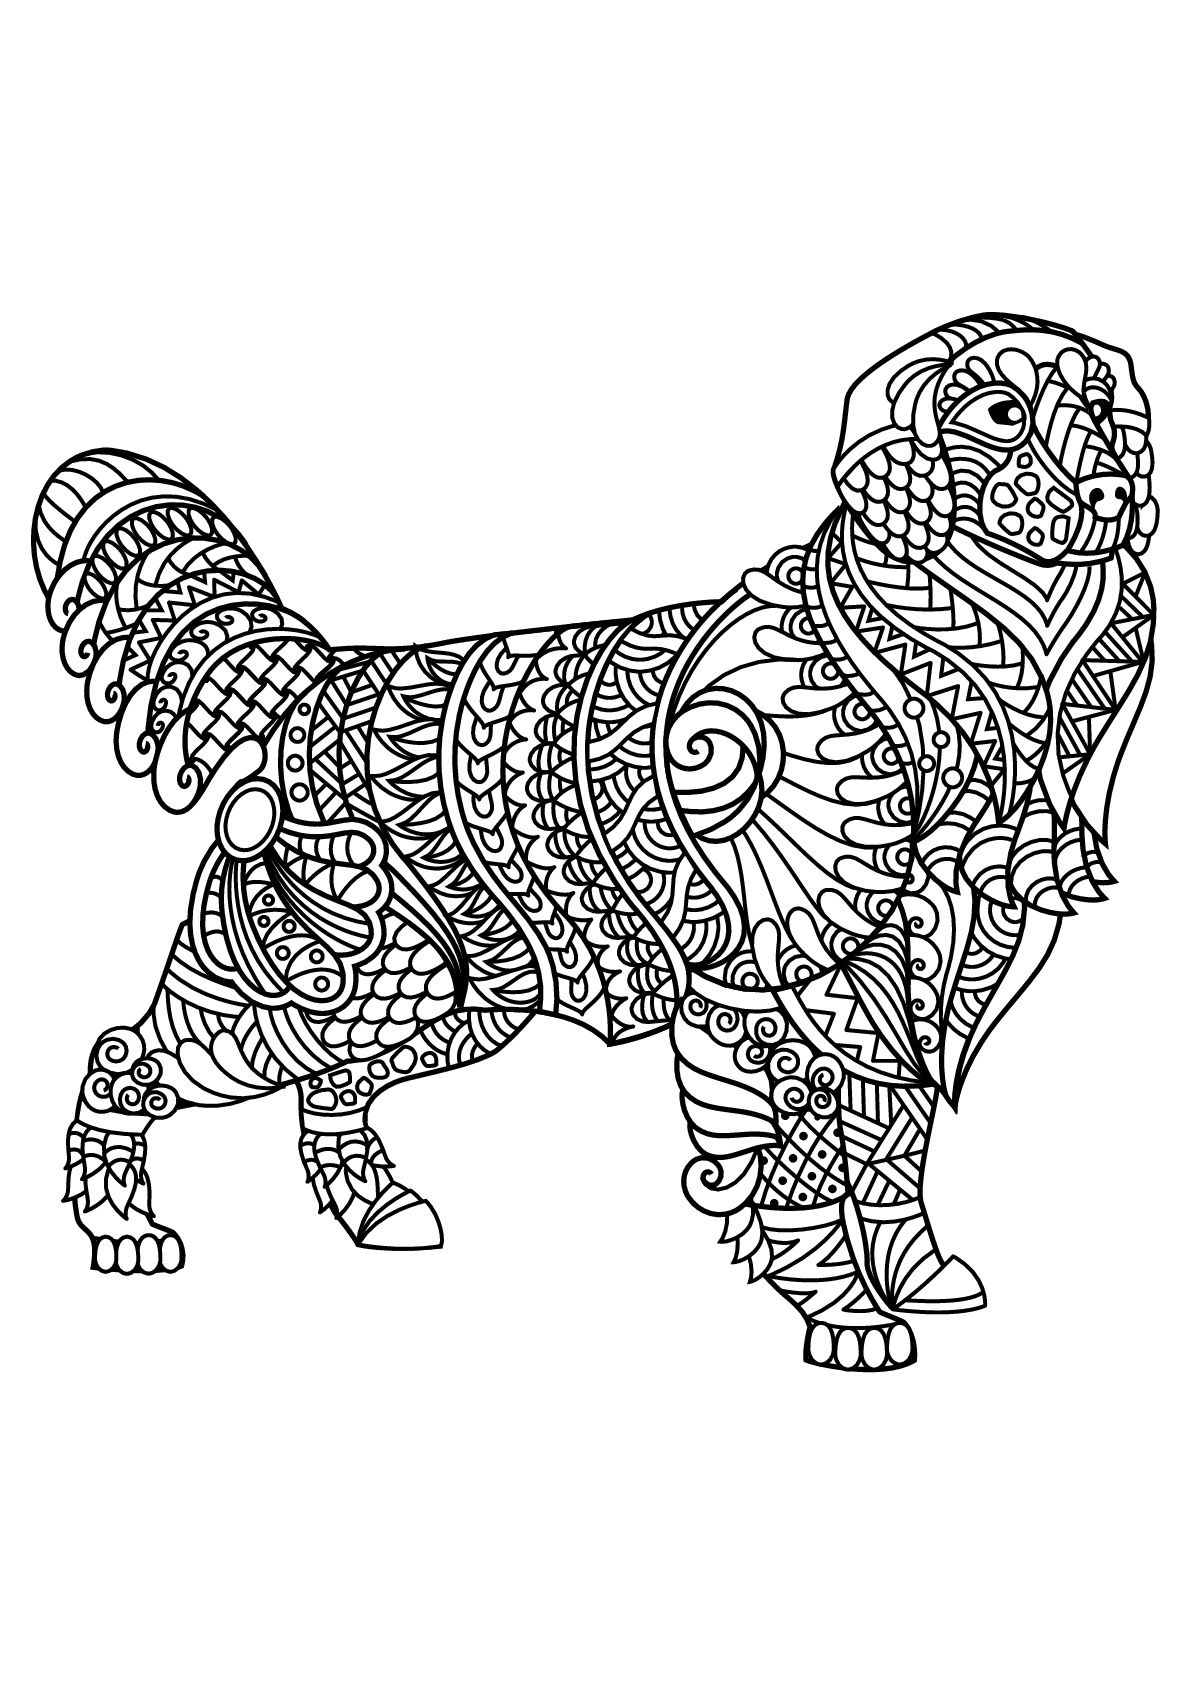 - HIDDEN - Animals Coloring Pages For Adults - Just Color (With